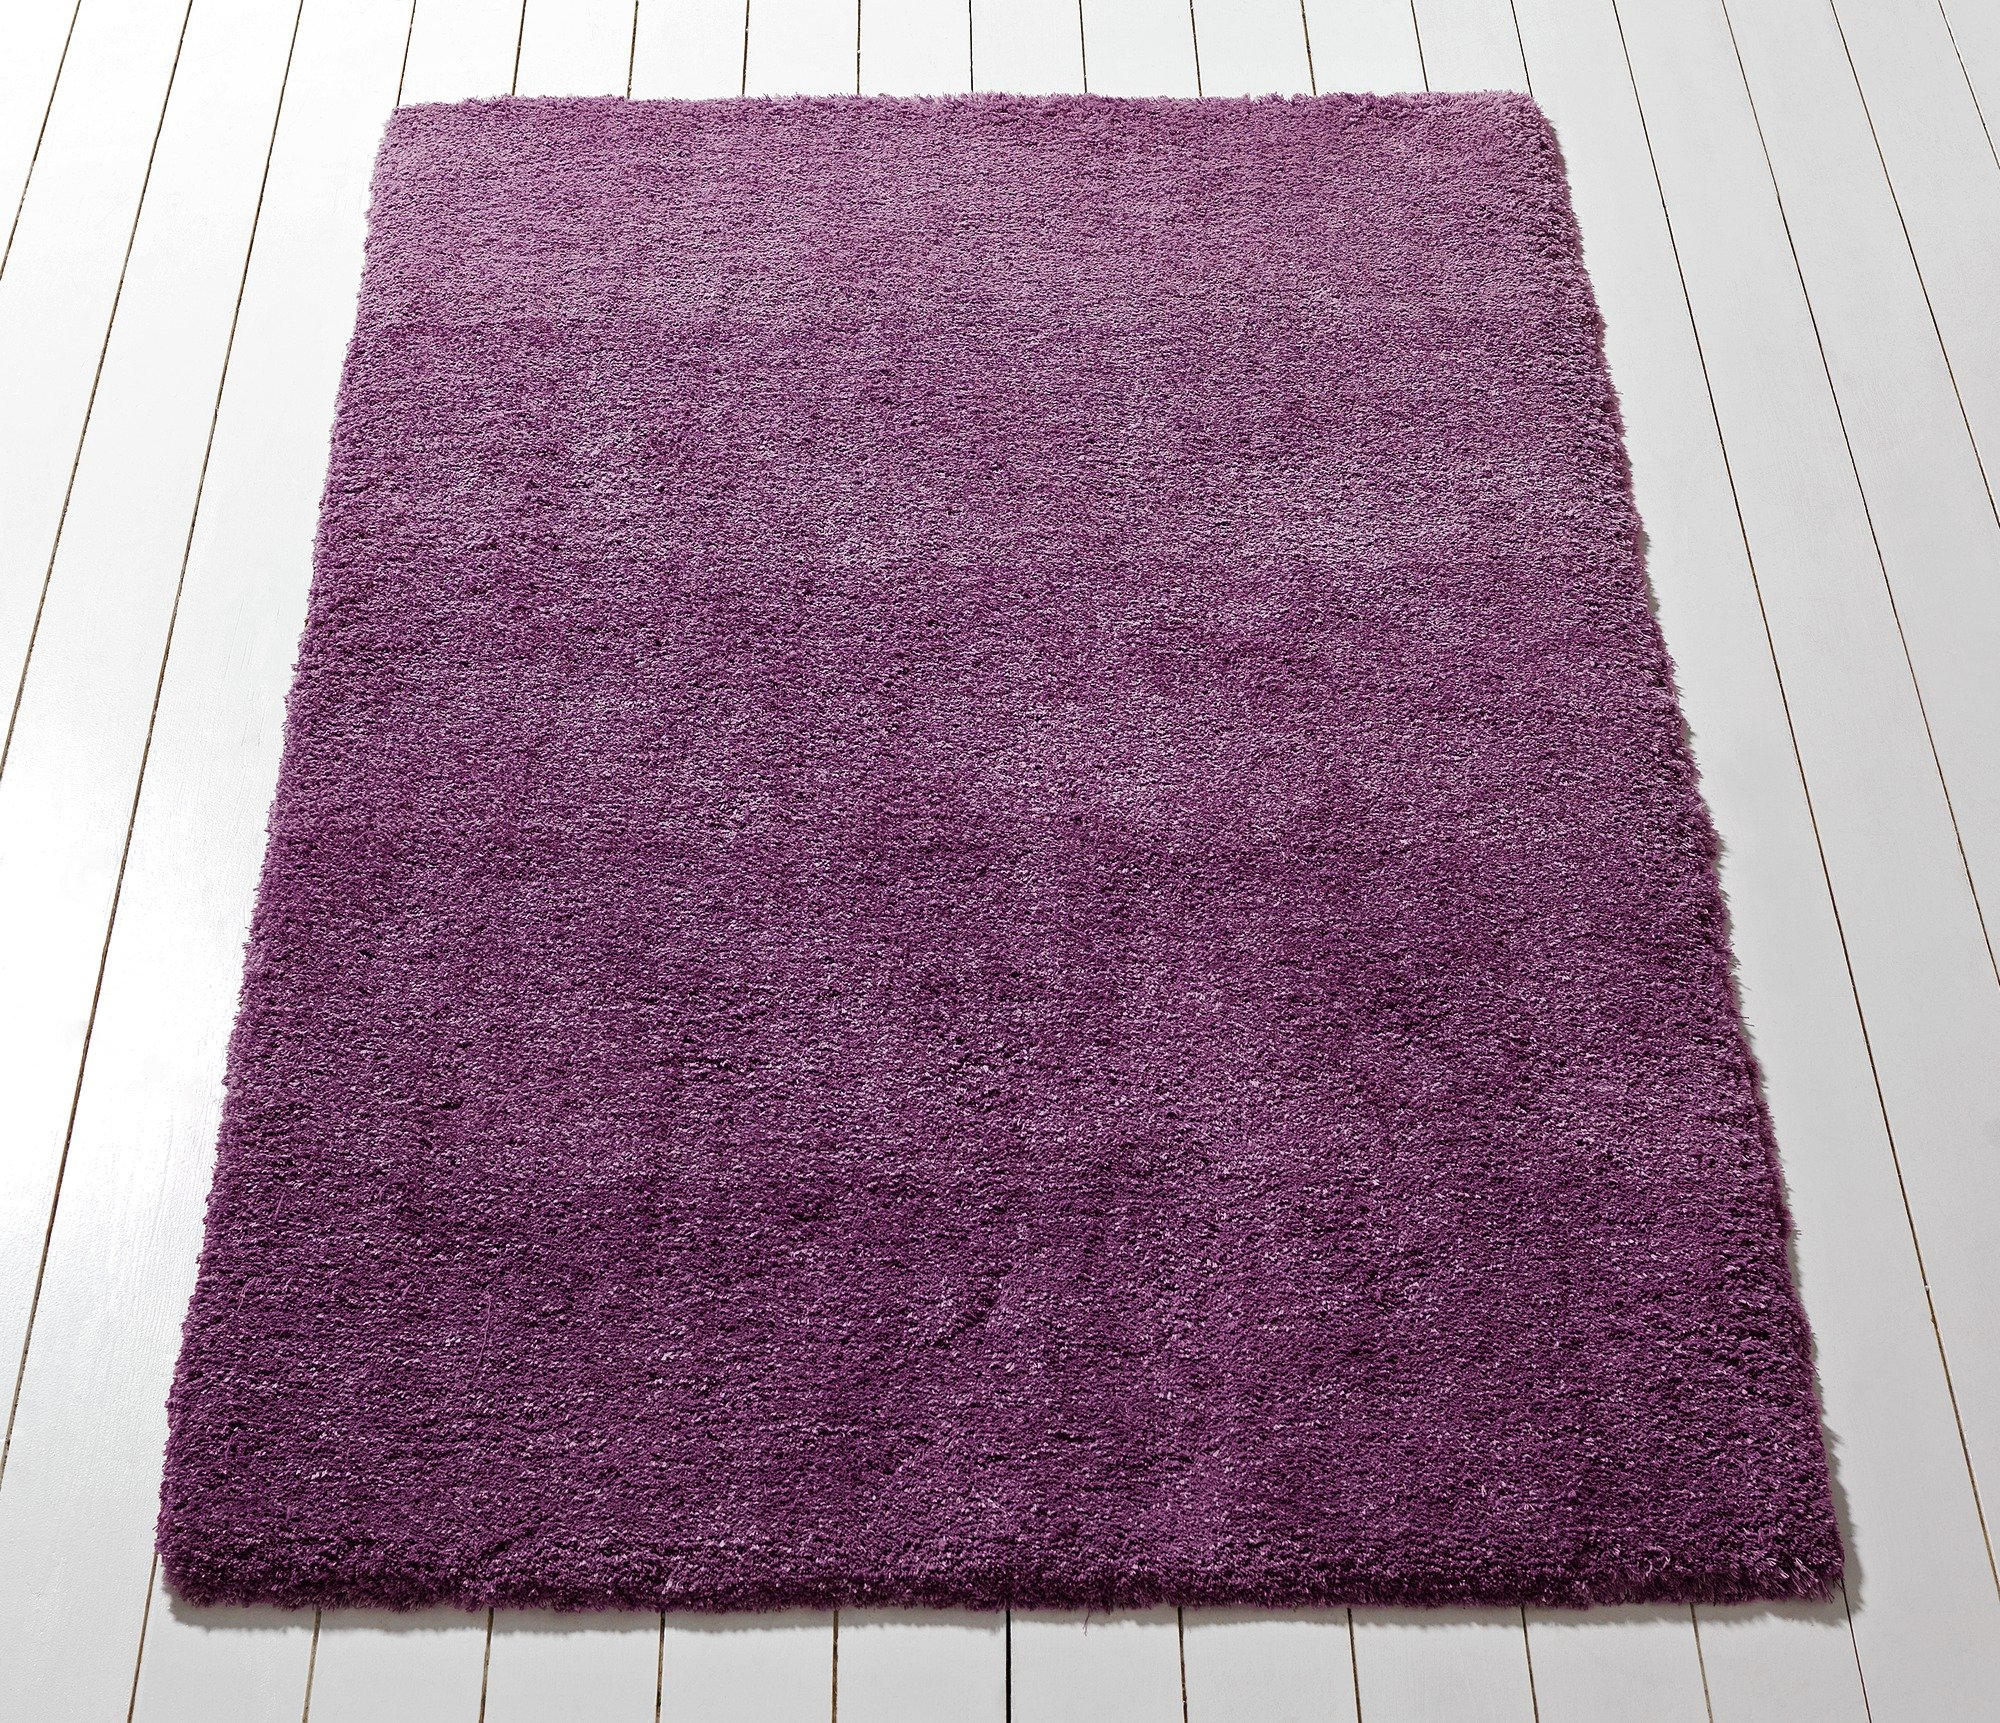 Collection Ombre Supersoft Shaggy Rug - 230x160cm - Plum